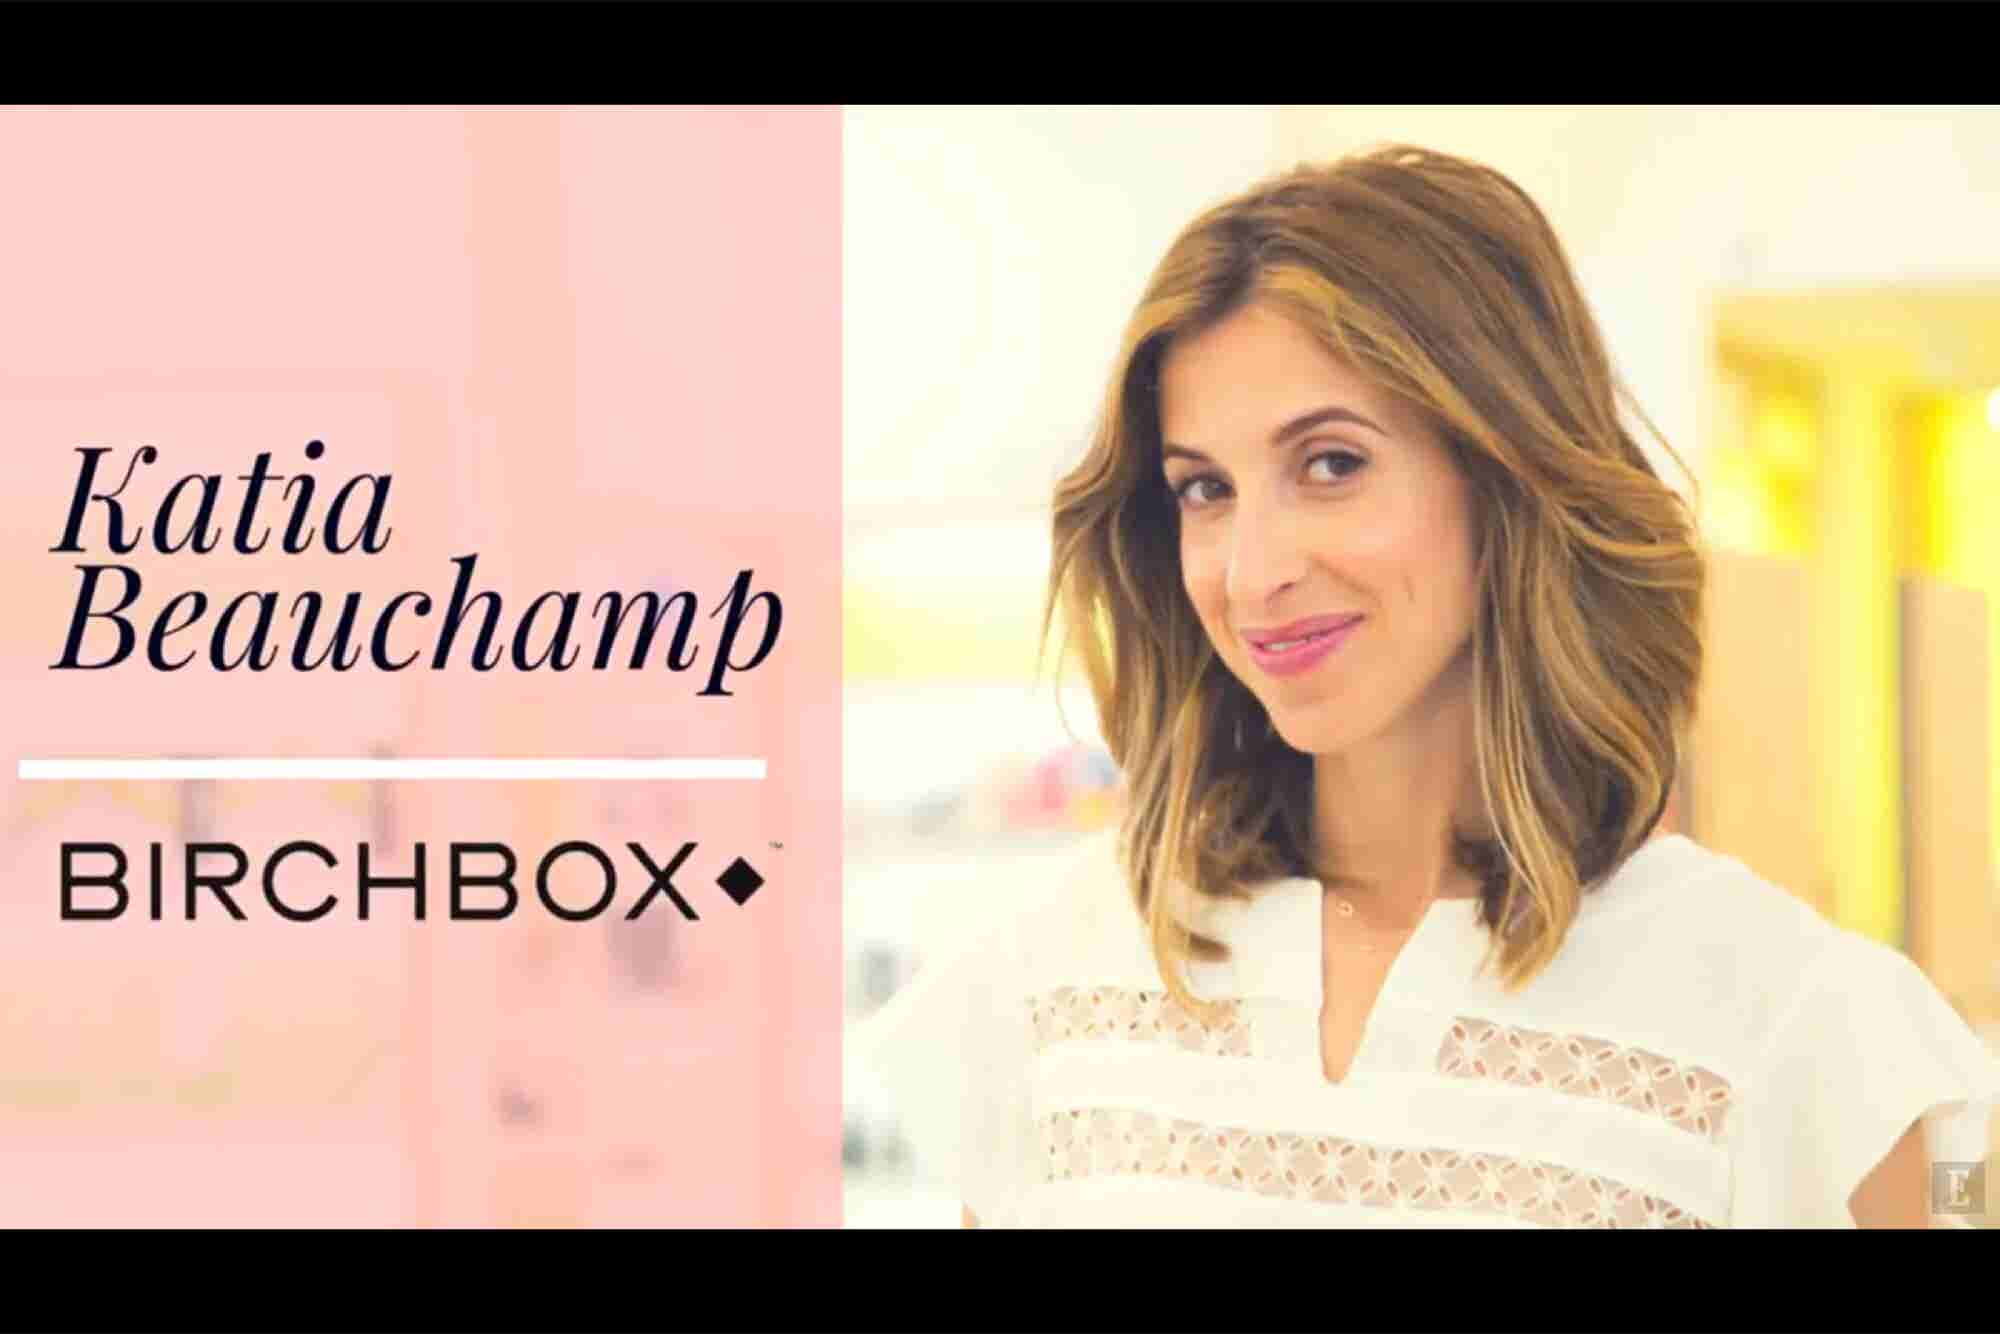 How Birchbox Valued Service Over Sales, and How That Shaped Its Business Model Philosophy